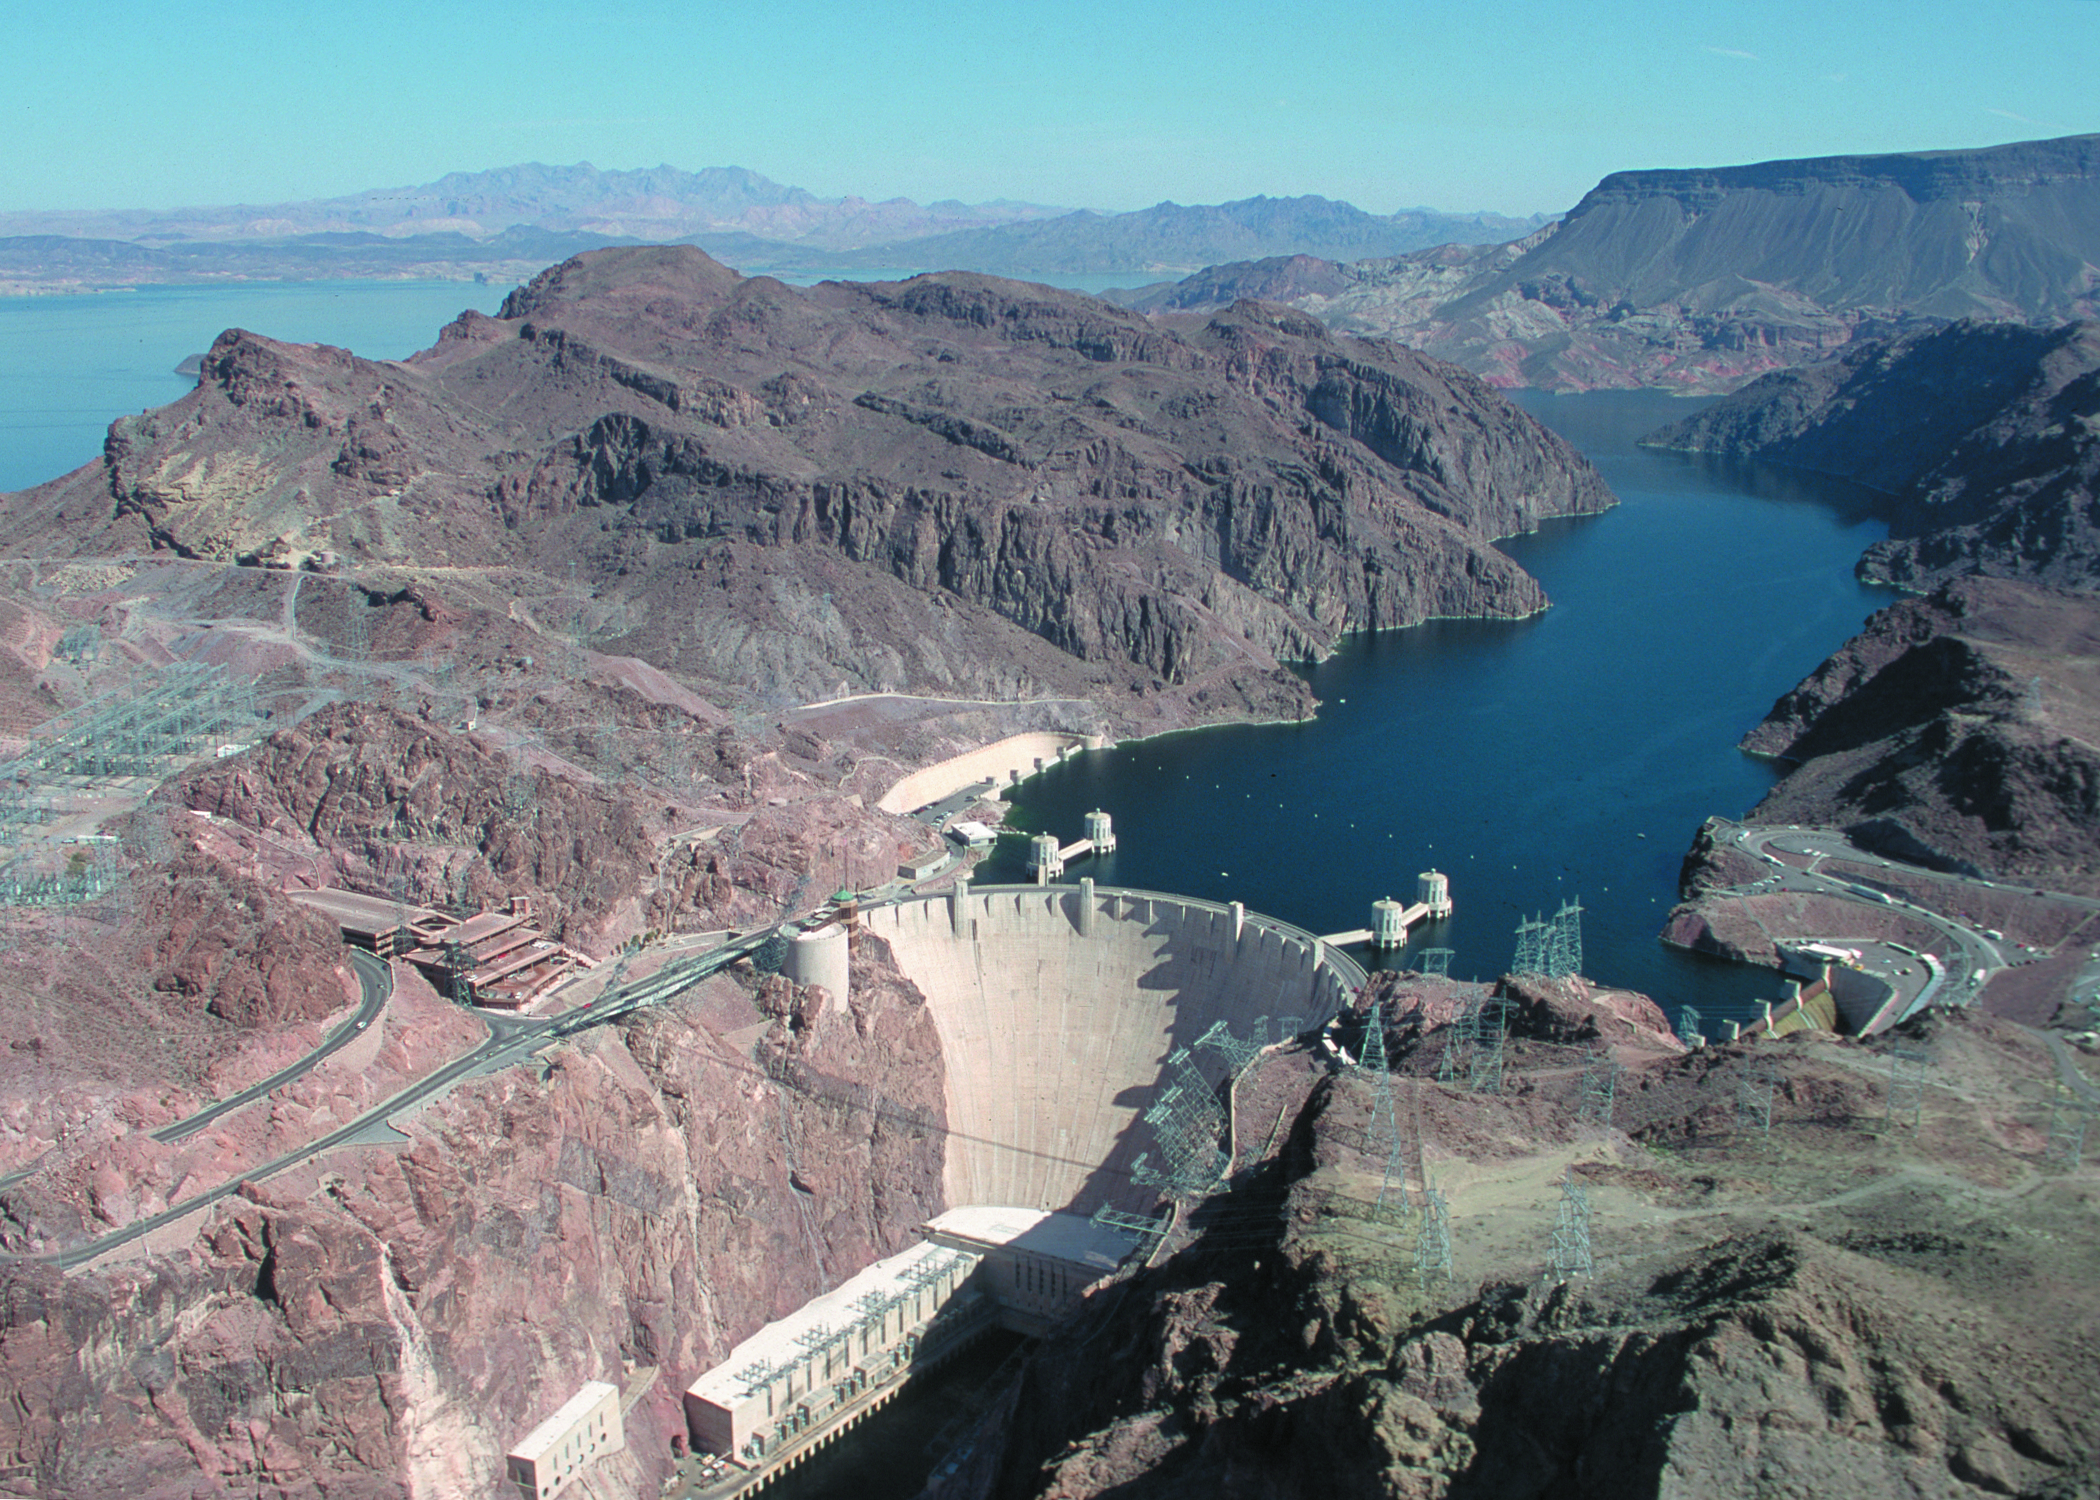 hoover_dam_ariel_view_things_to_do_in_usa